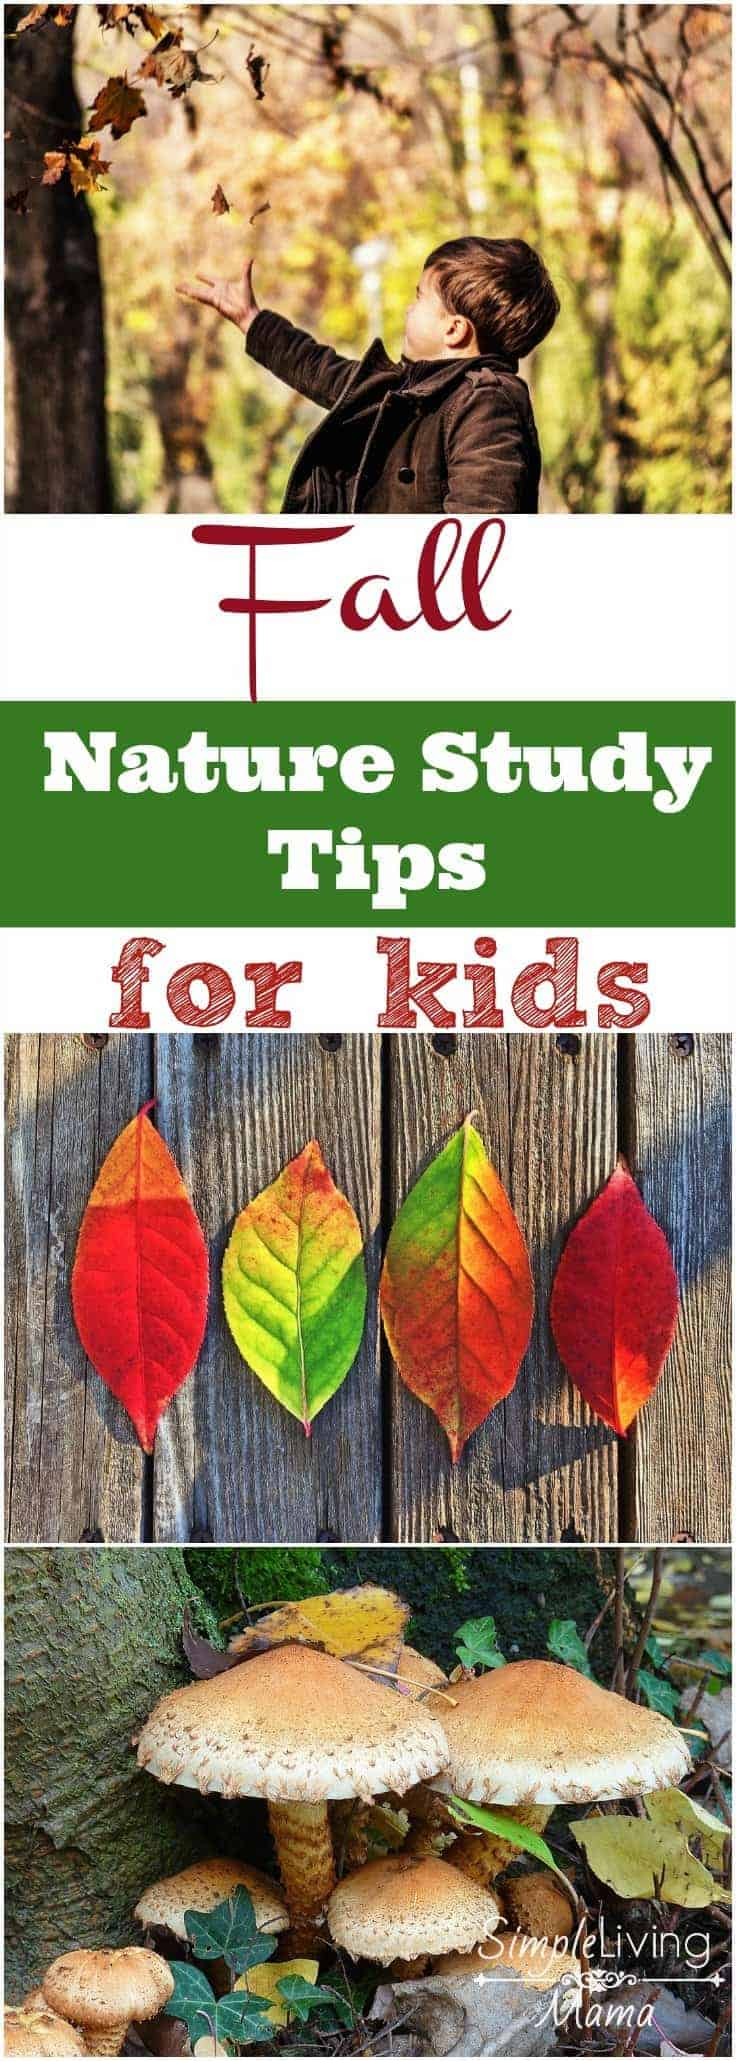 Fall is the perfect time to begin nature study with your kids. This is the perfect guide for fall nature study tips for kids. Get outside and explore!